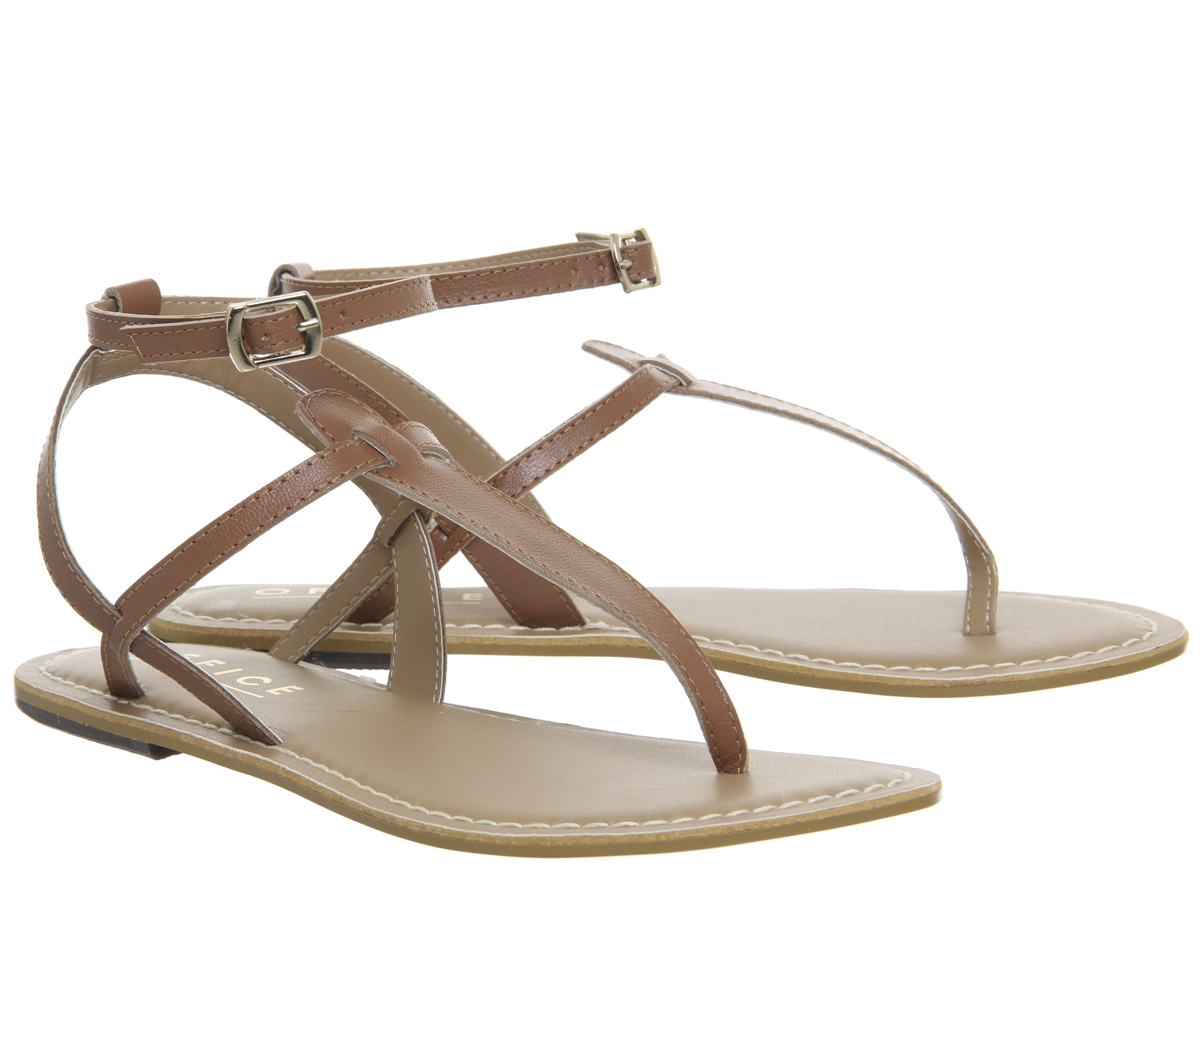 bbdbbc550e4 Womens Office Salsa Ankle Strap Toe Post Sandals Tan Leather Sandals ...